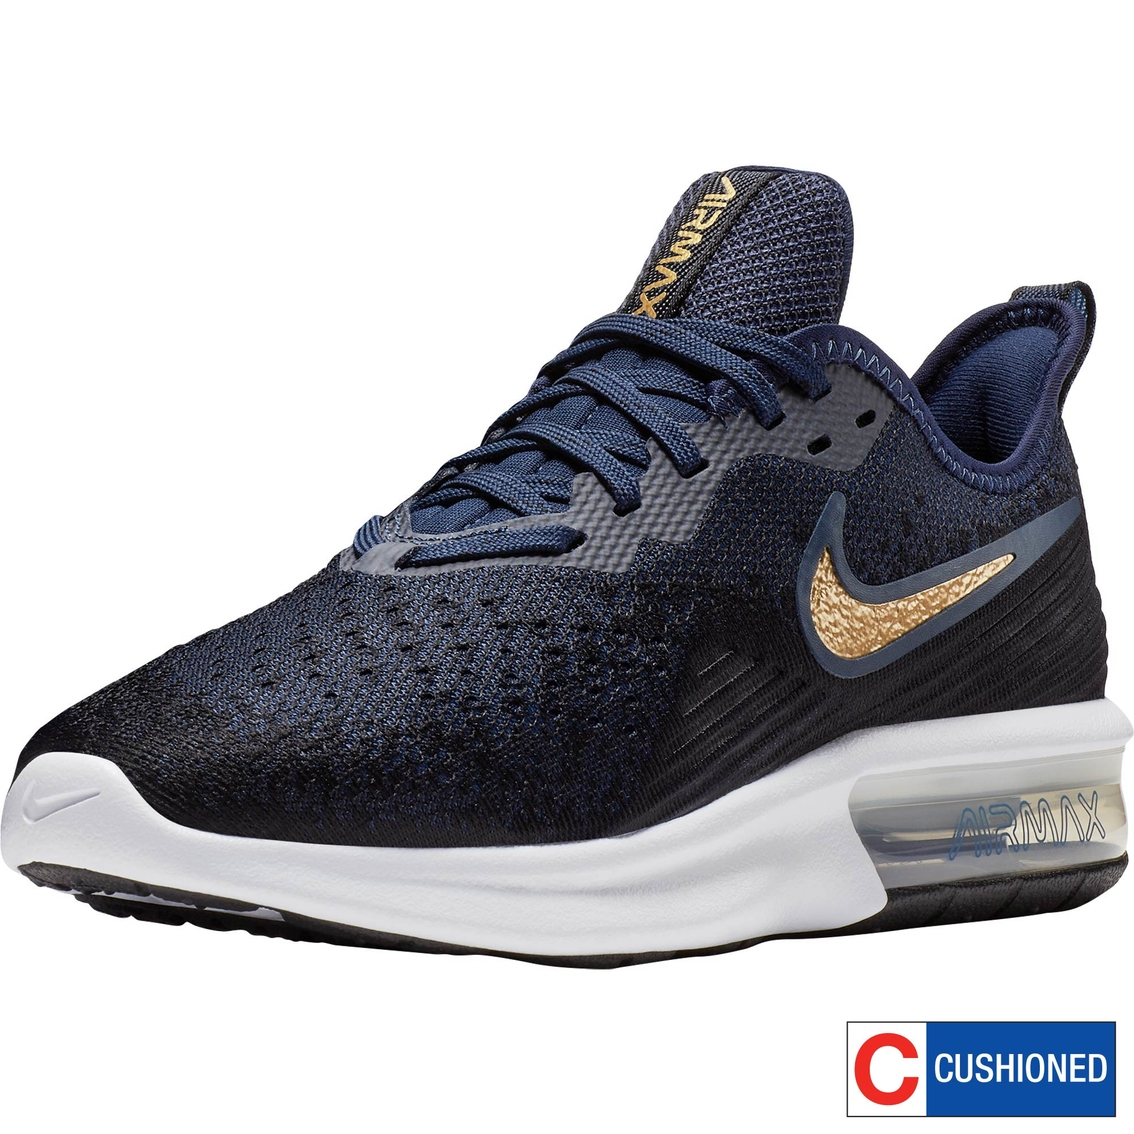 low priced 089f2 27f76 Nike Women s Air Max Sequent 4 Running Shoes